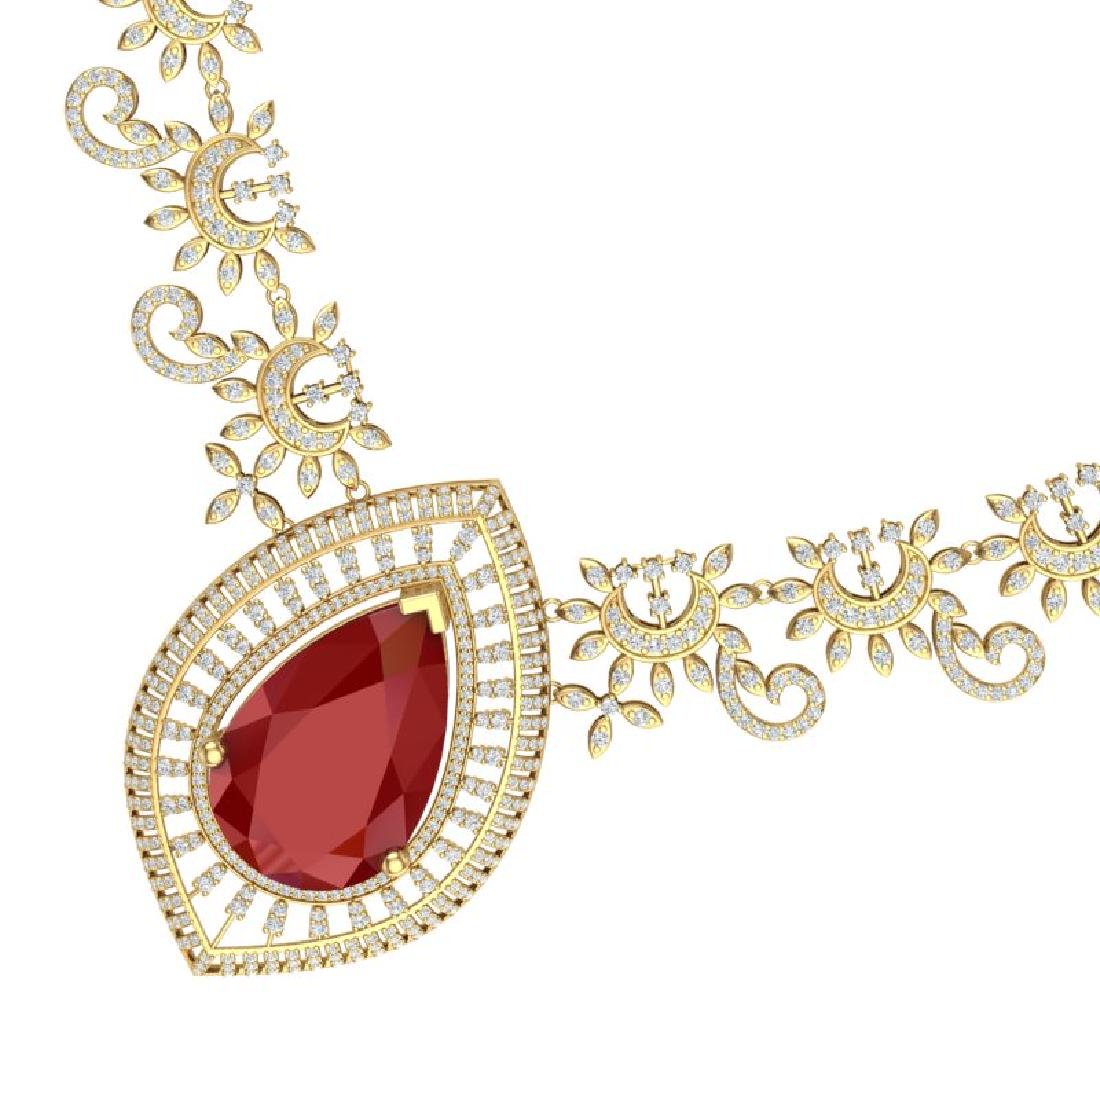 65.75 CTW Royalty Ruby & VS Diamond Necklace 18K Yellow